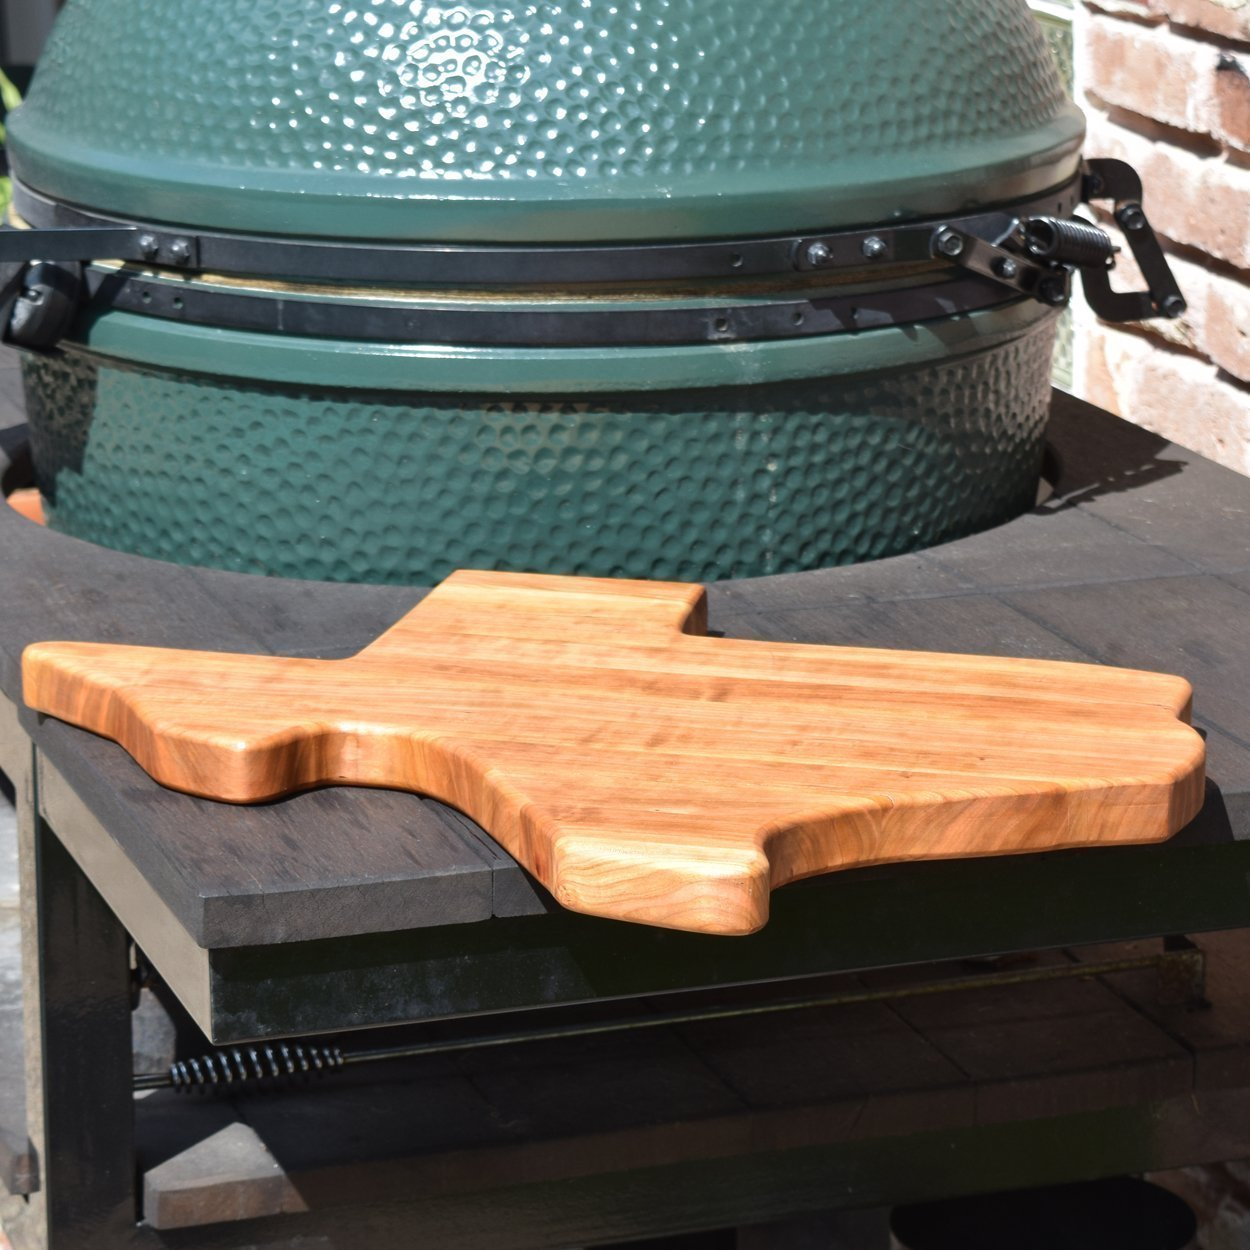 Handcrafted Texas Wood Cutting Board Chopping Block Reversible Butcher Block by The Practical Plankist